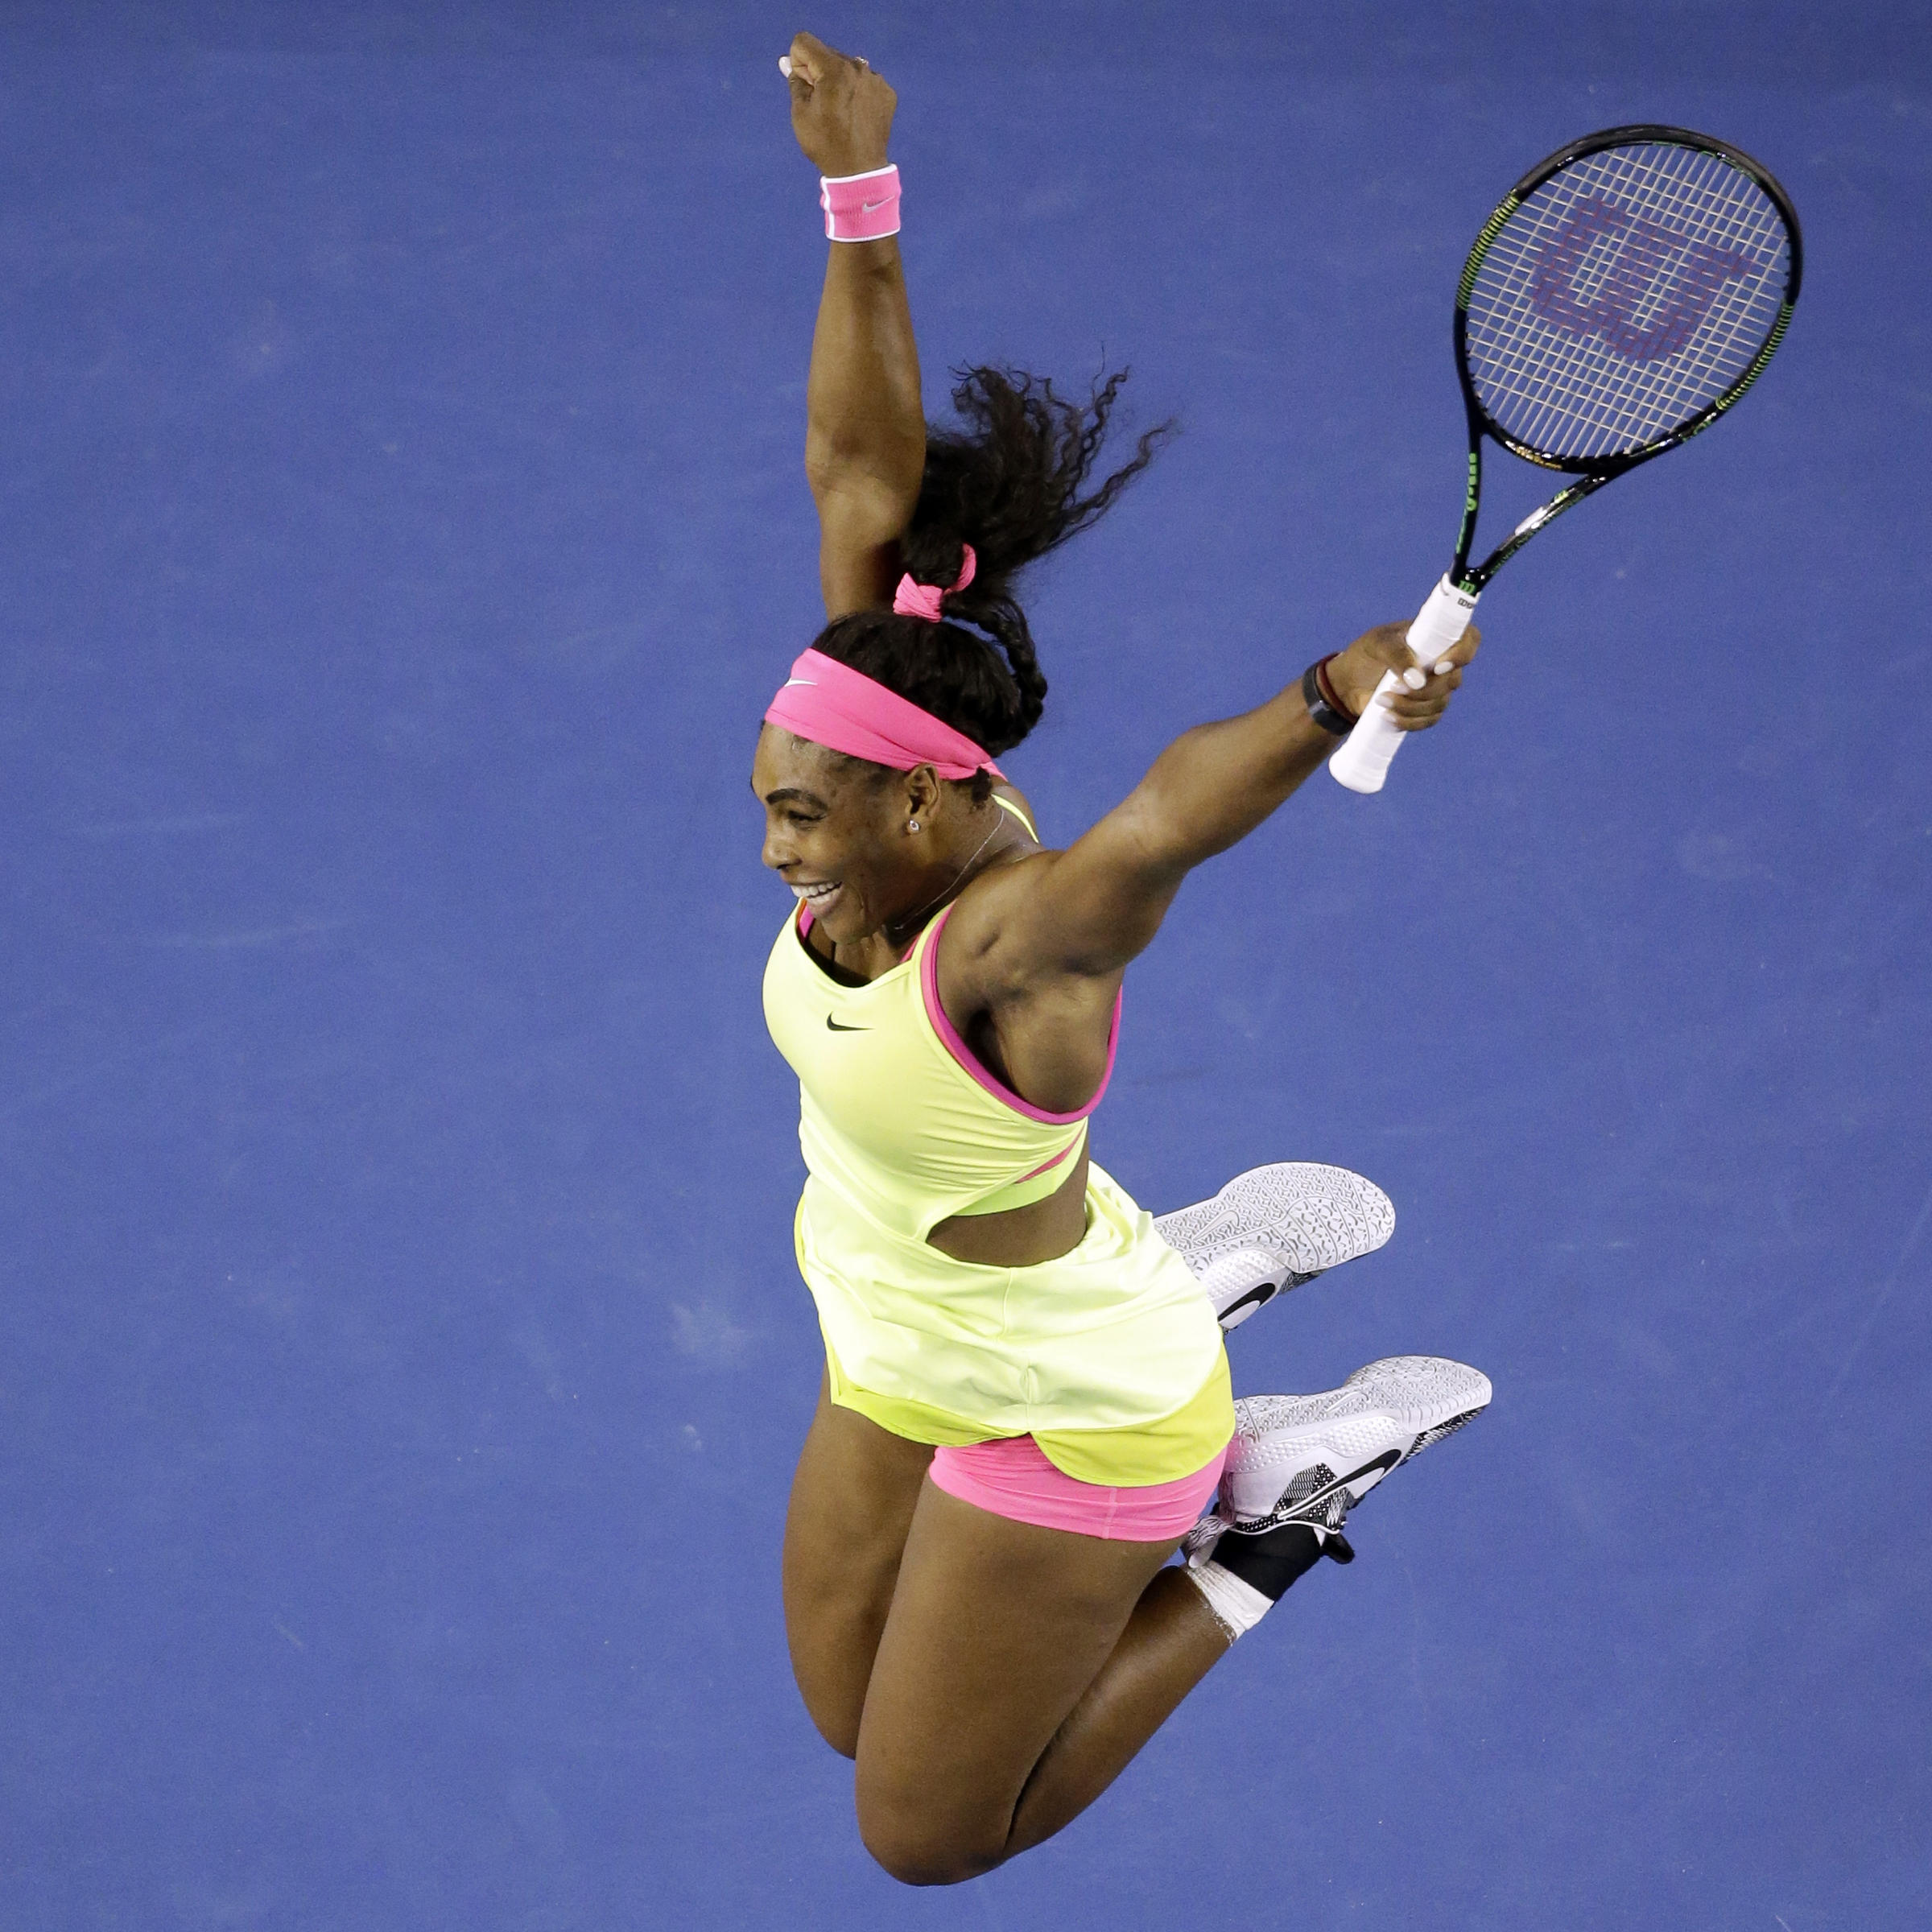 serena singles Williams, 36, won her first match at the bnp paribas open in indian wells, california, in her return after 14 months away for the birth of her daughter.